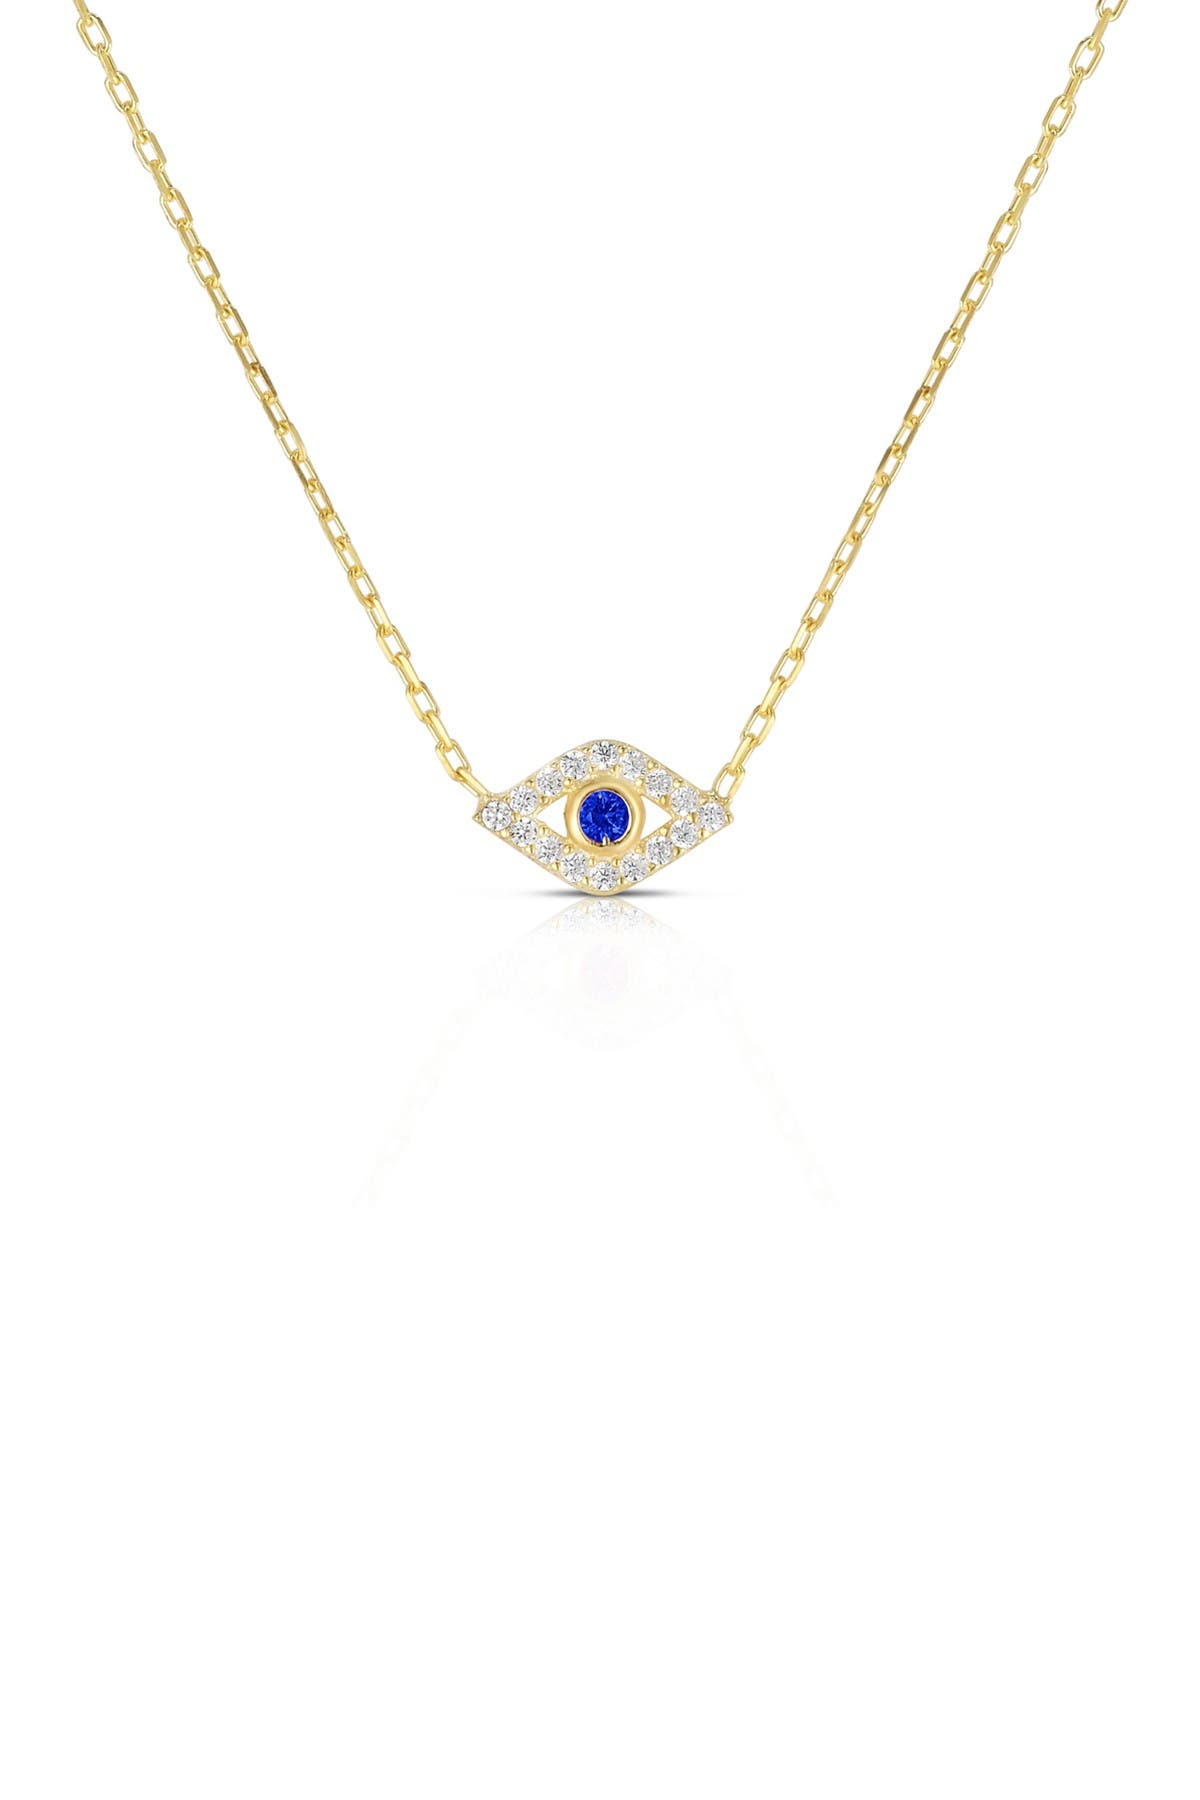 Sphera Milano 14K Yellow Gold Plated Sterling Silver Pave CZ Evil Eye Pendant Necklace at Nordstrom Rack